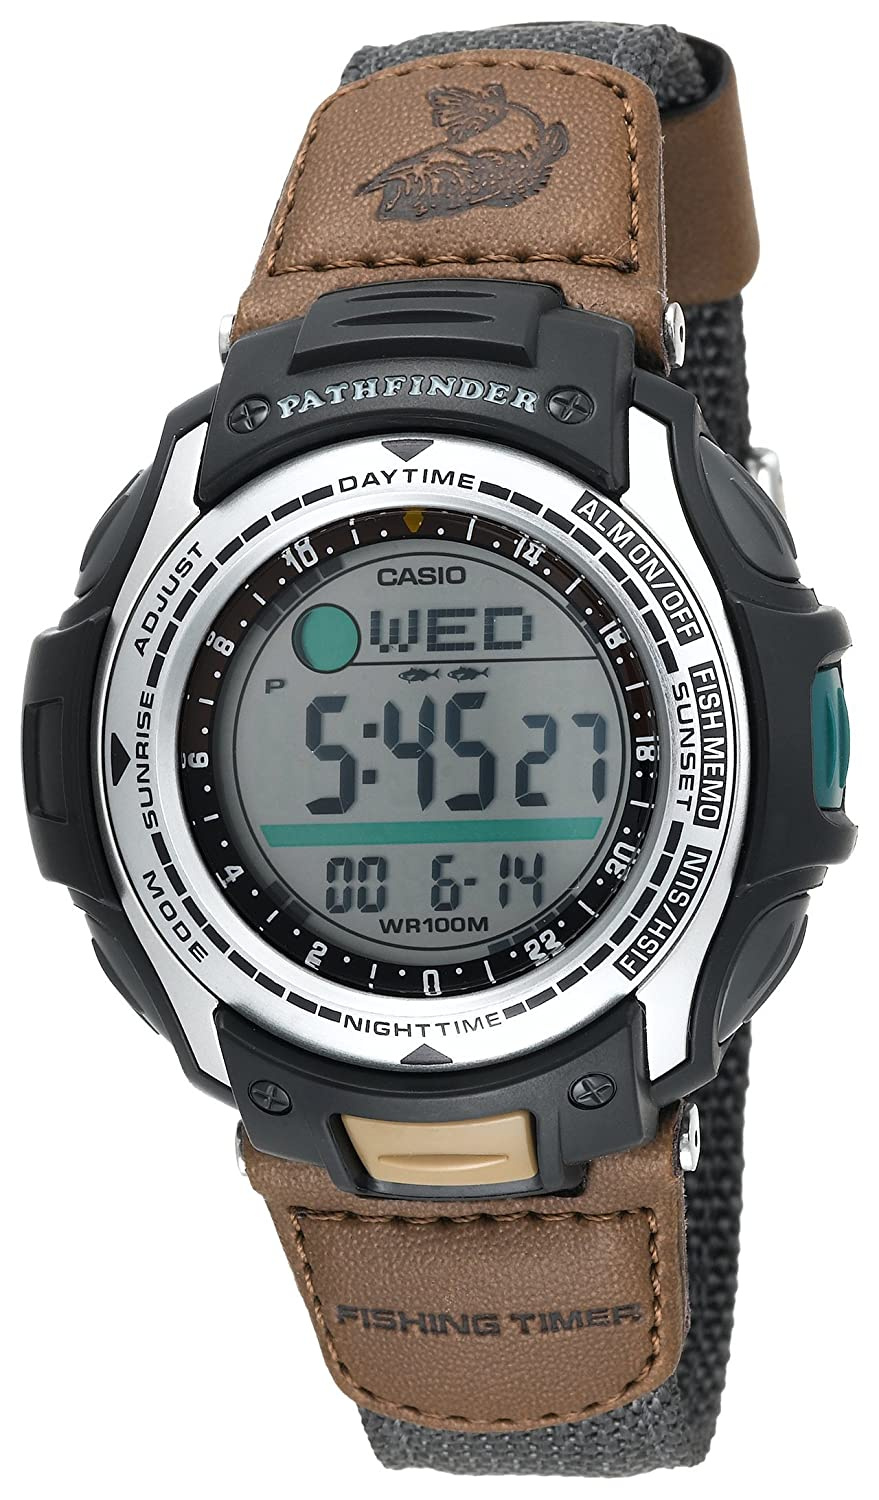 Casio Men's PAS400B-5V Pathfinder Forester Fishing Moon Phase Watch $30.00